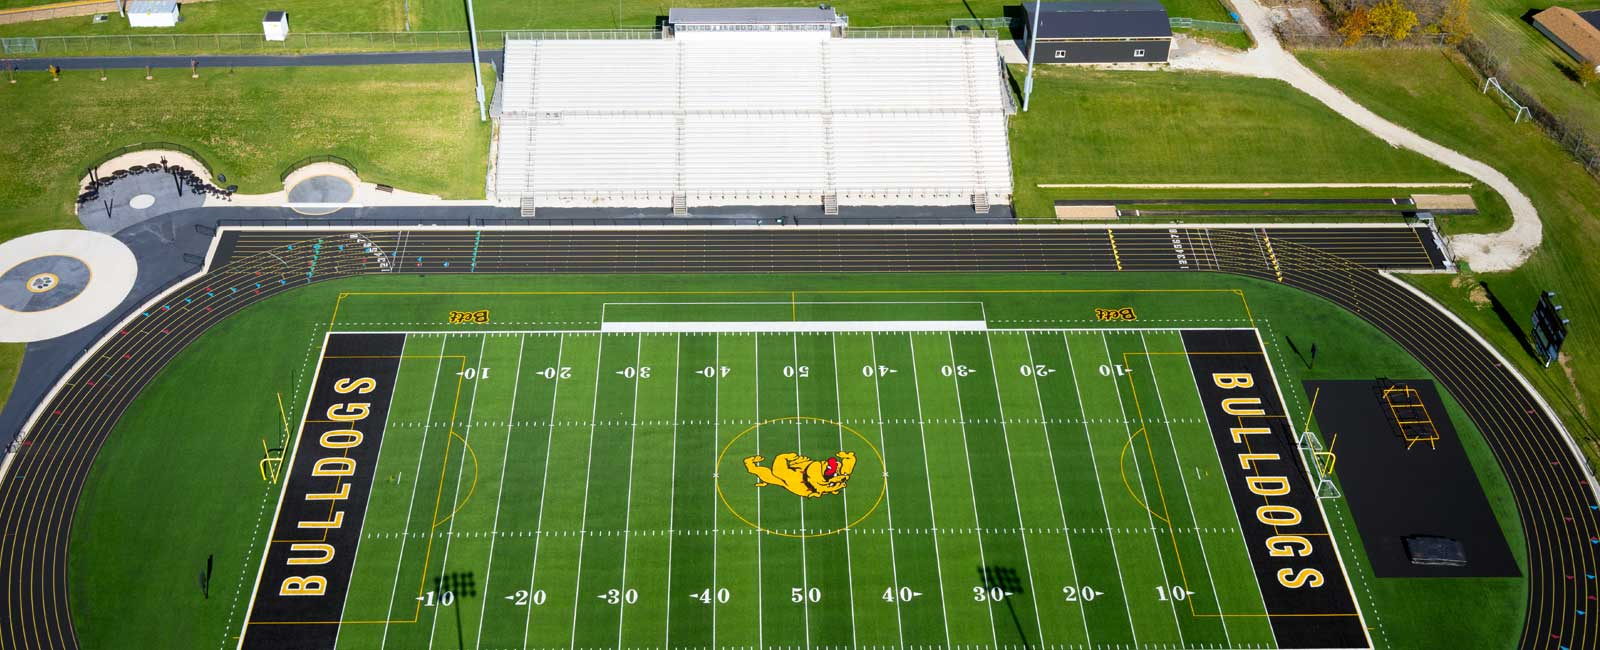 Bettendorf Field